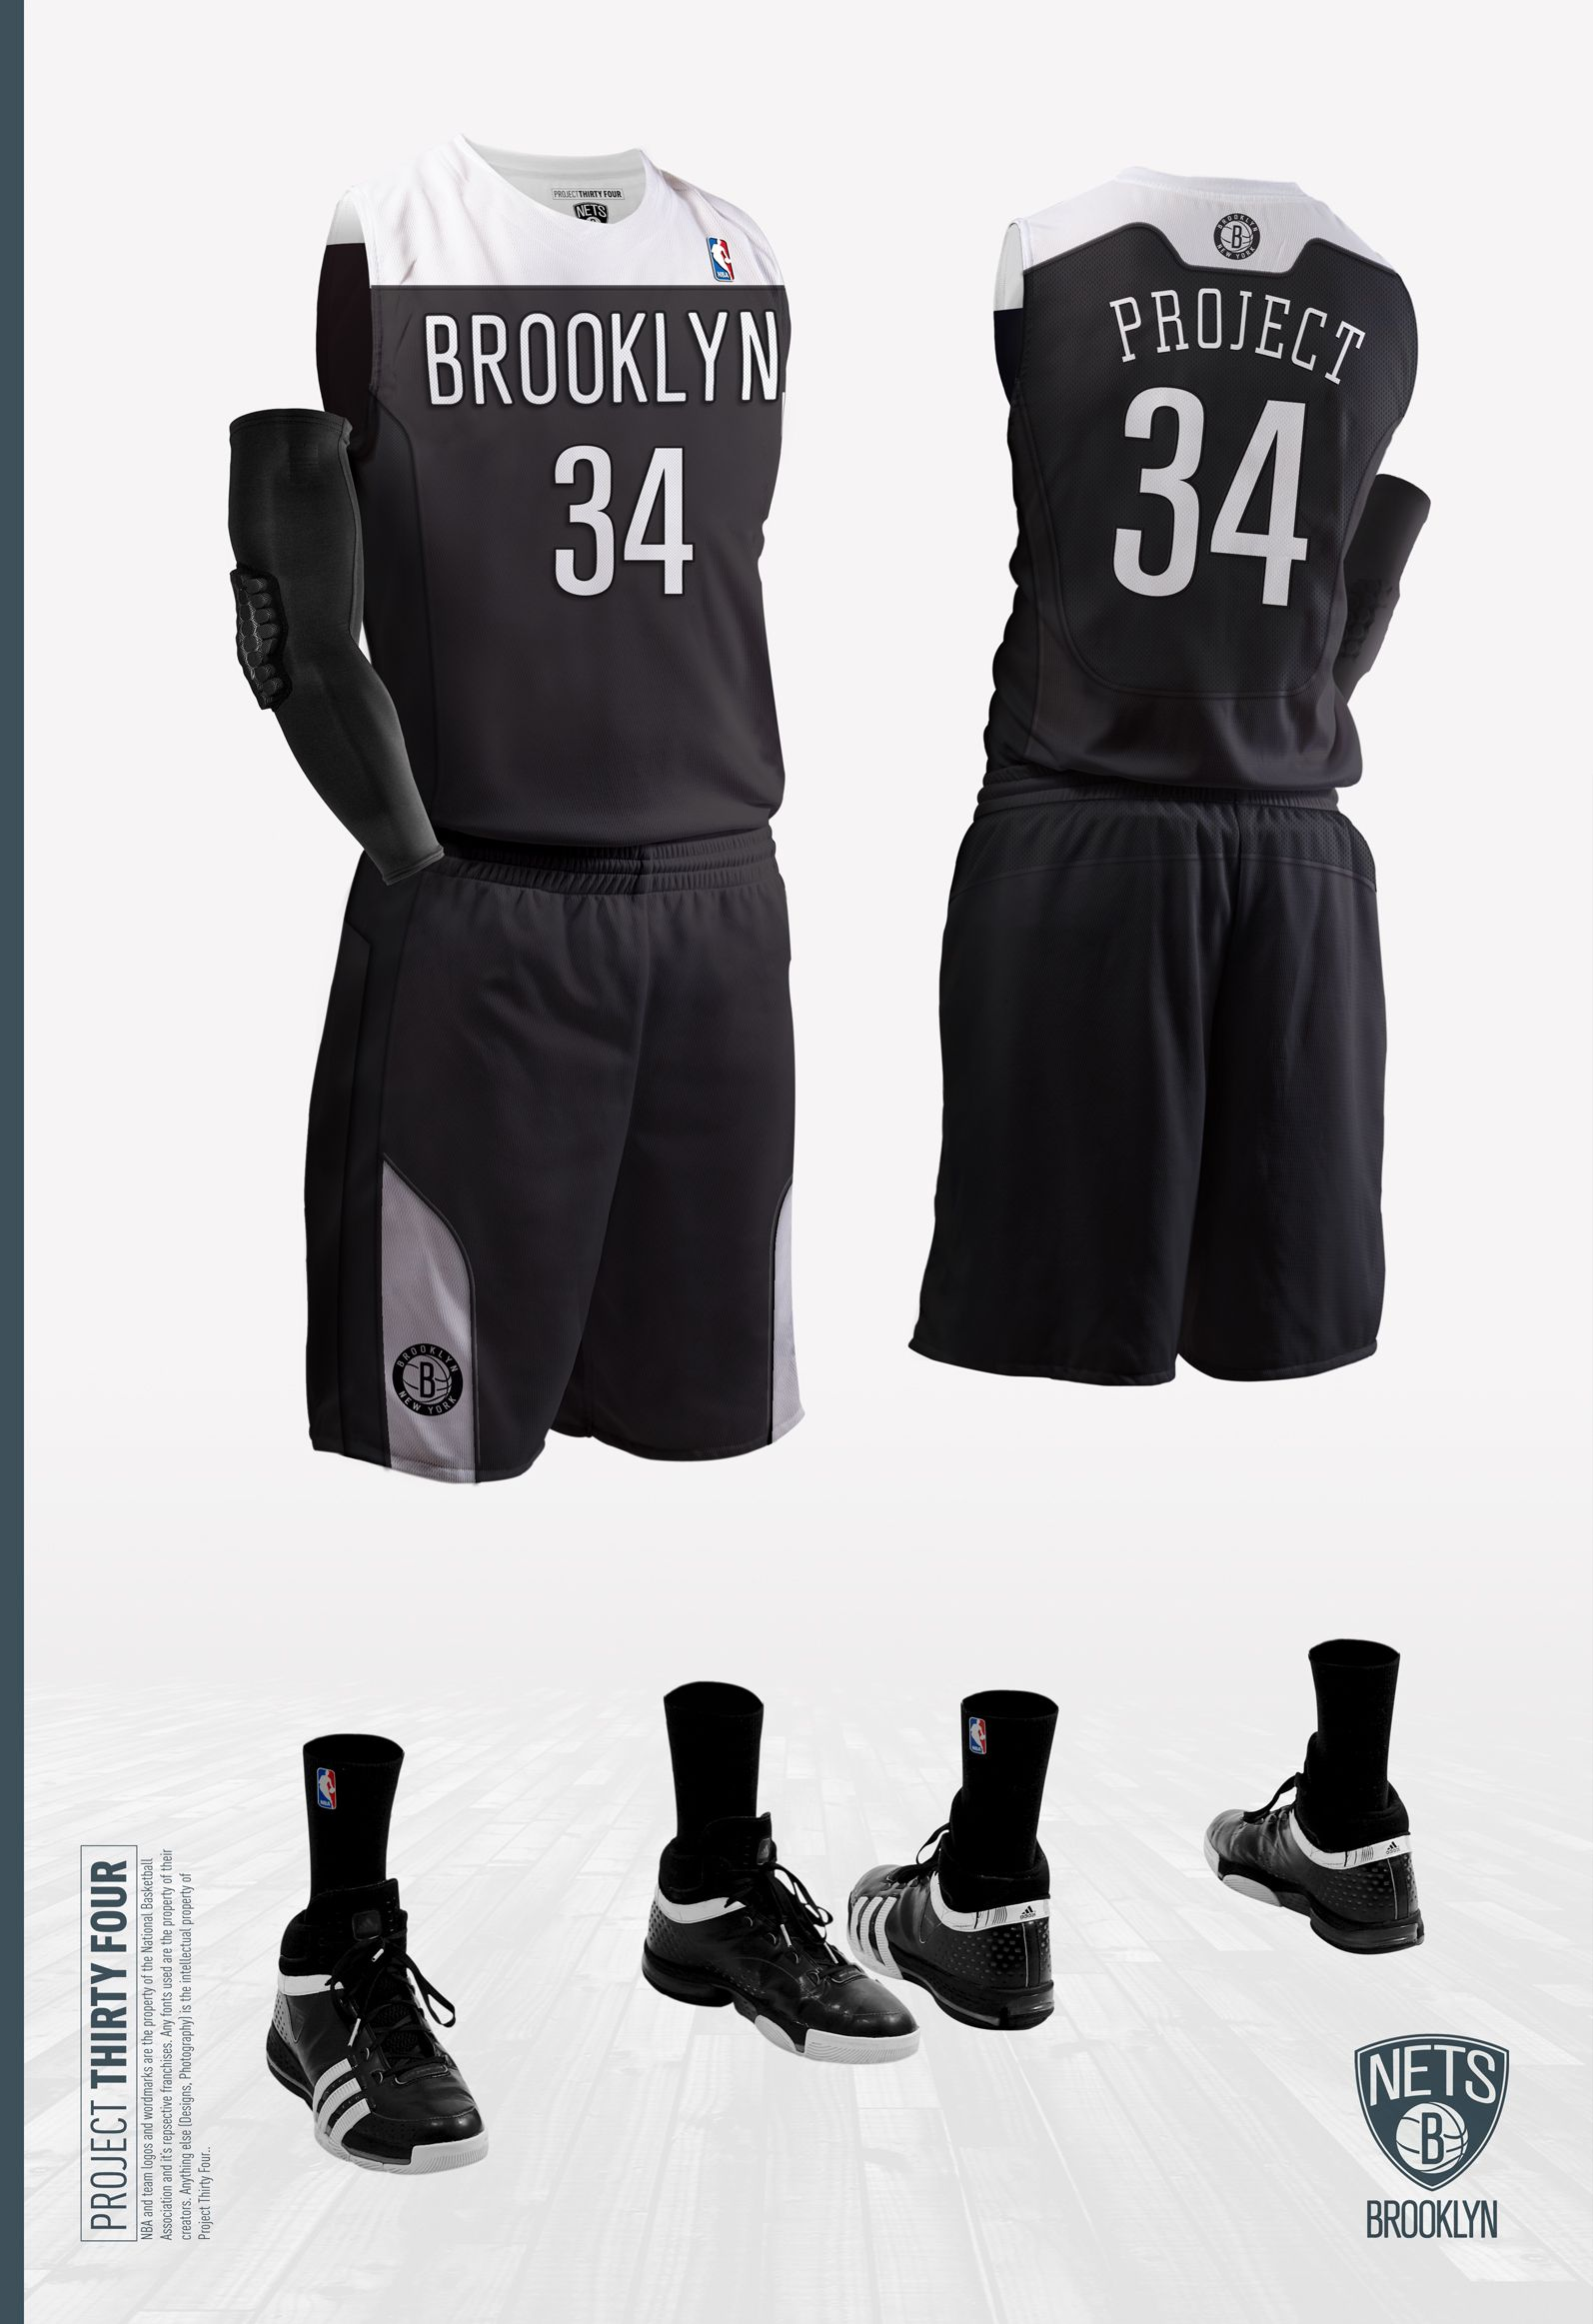 Fanmade concept design for the Brooklyn Nets  jerseys. The real jerseys  will be unveiled later this month (Sept12). ea4d498d0